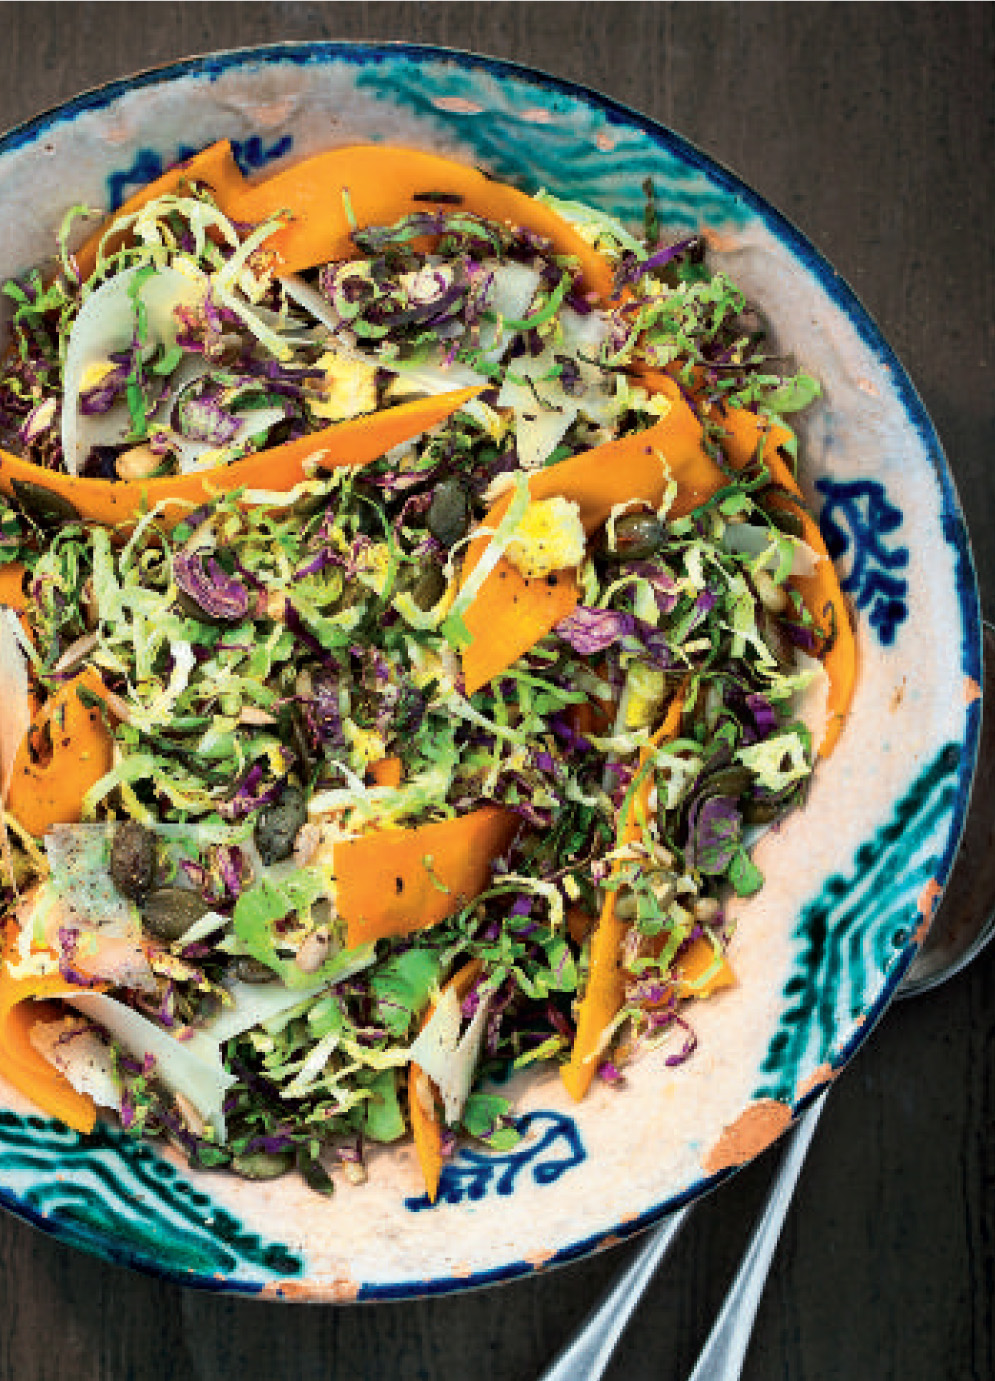 Kalette, squash and parmesan salad